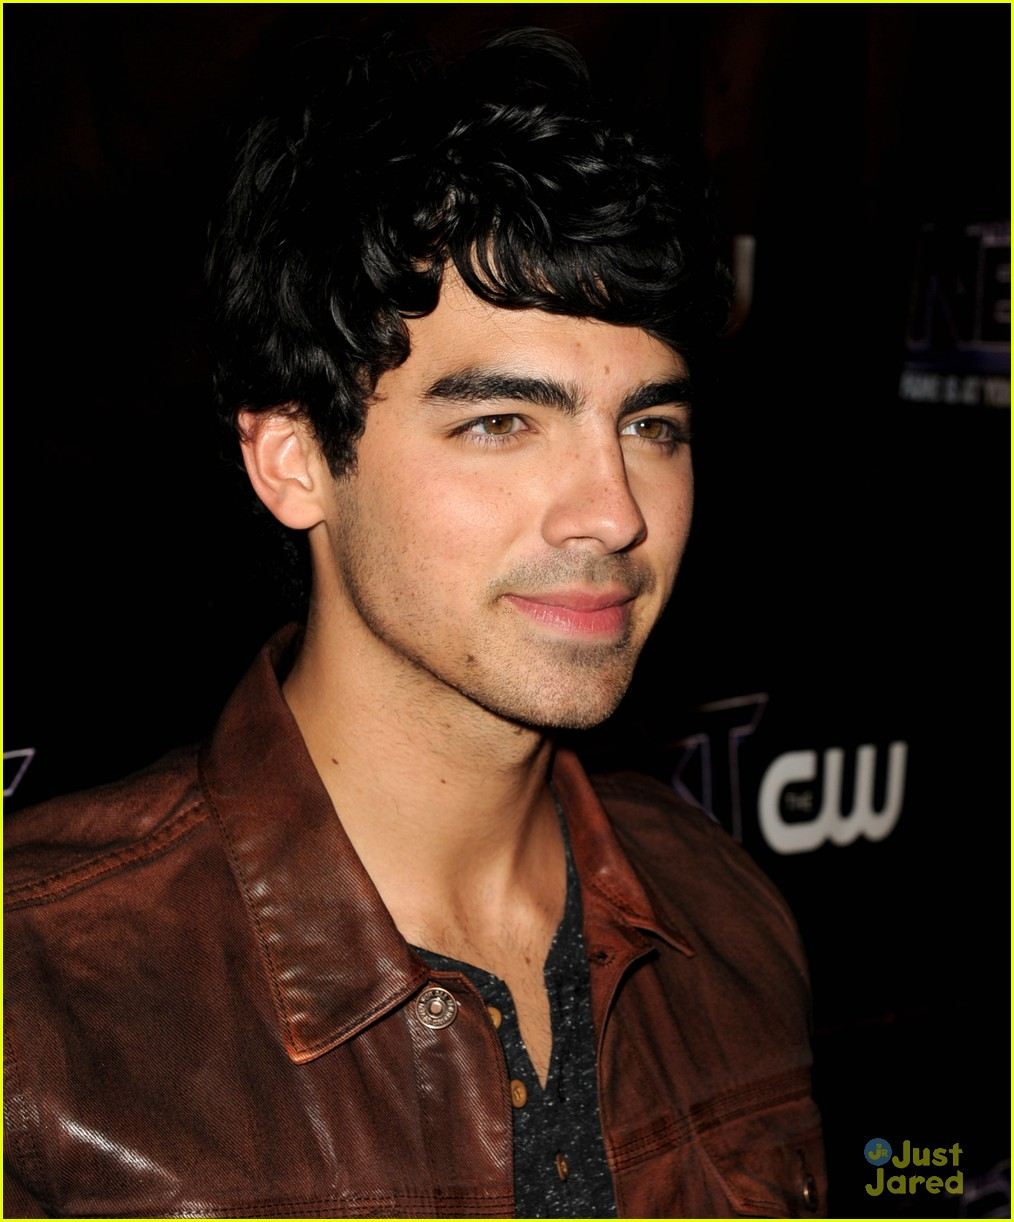 joe jonas bday cw next 16